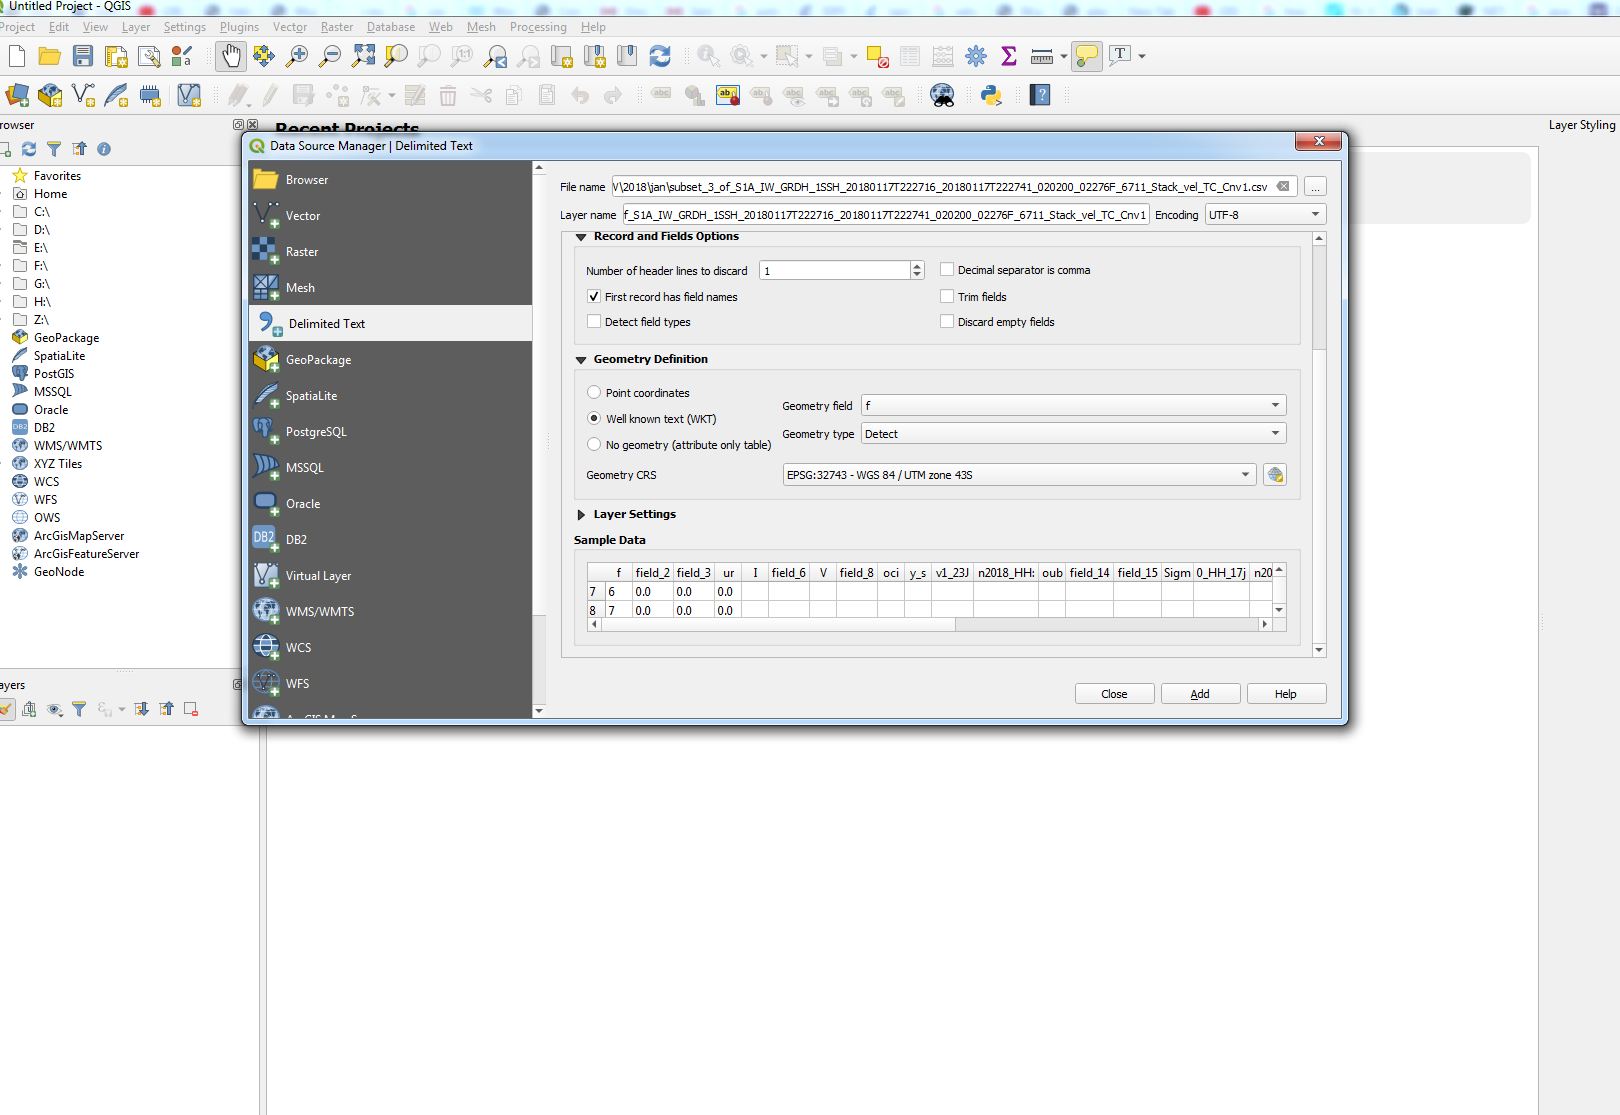 csv file not open in Qgis - s1tbx - STEP Forum